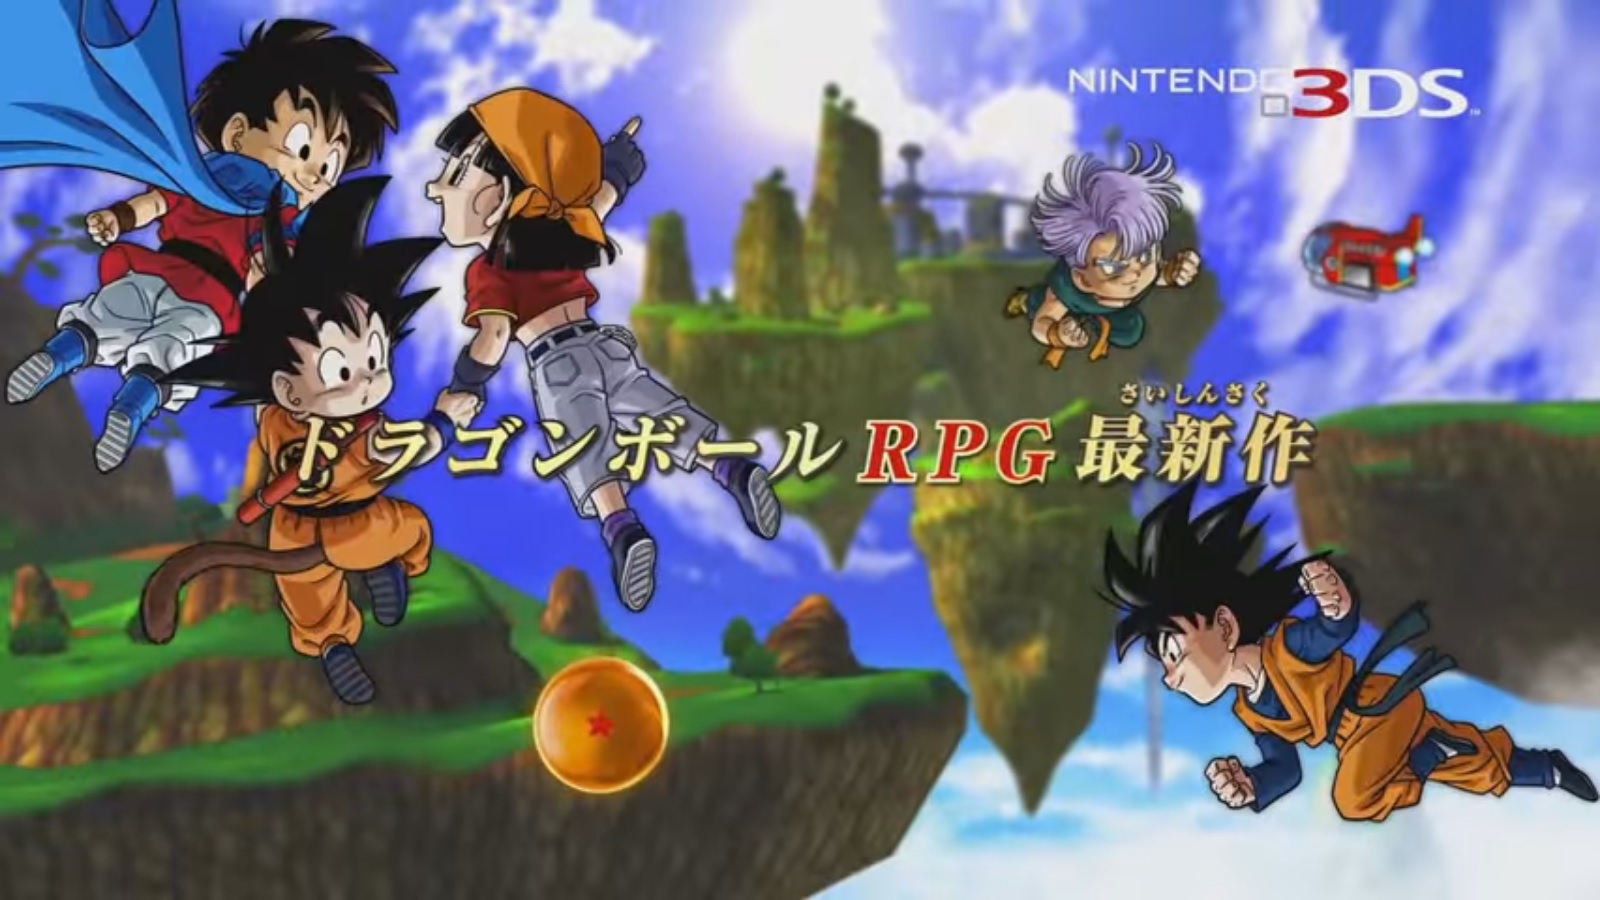 Bandai Namco Has Published Another Commercial For Its New 3DS Game Dragon Ball Fusions You Can Take A Look At It Below